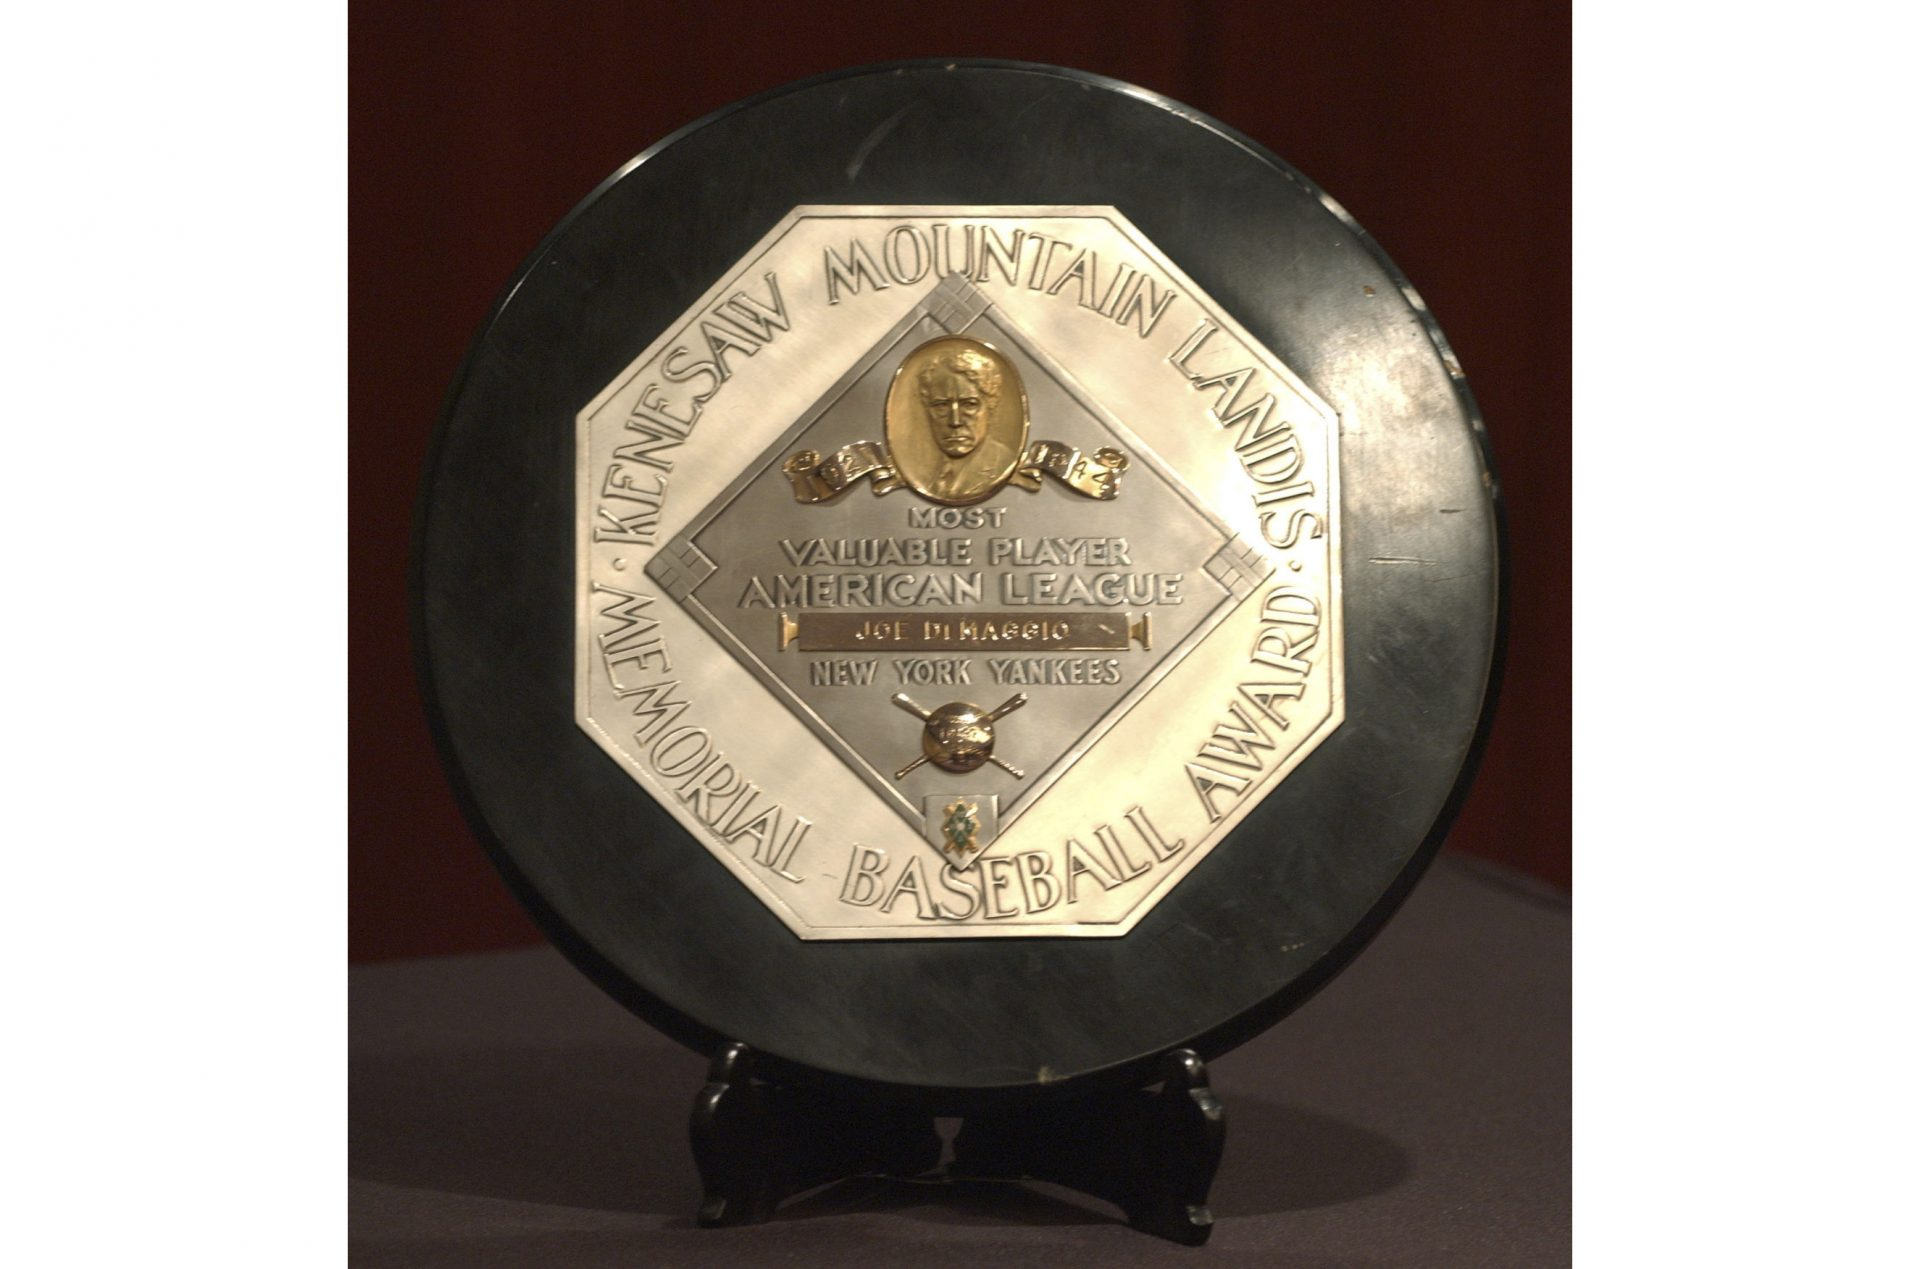 FILE - In this Jan. 22, 2006, file photo,a Joe DiMaggio 1947 MVP Award Plaque is displayed at a news conference in New York. The plaque features the name and image of Kenesaw Mountain Landis.